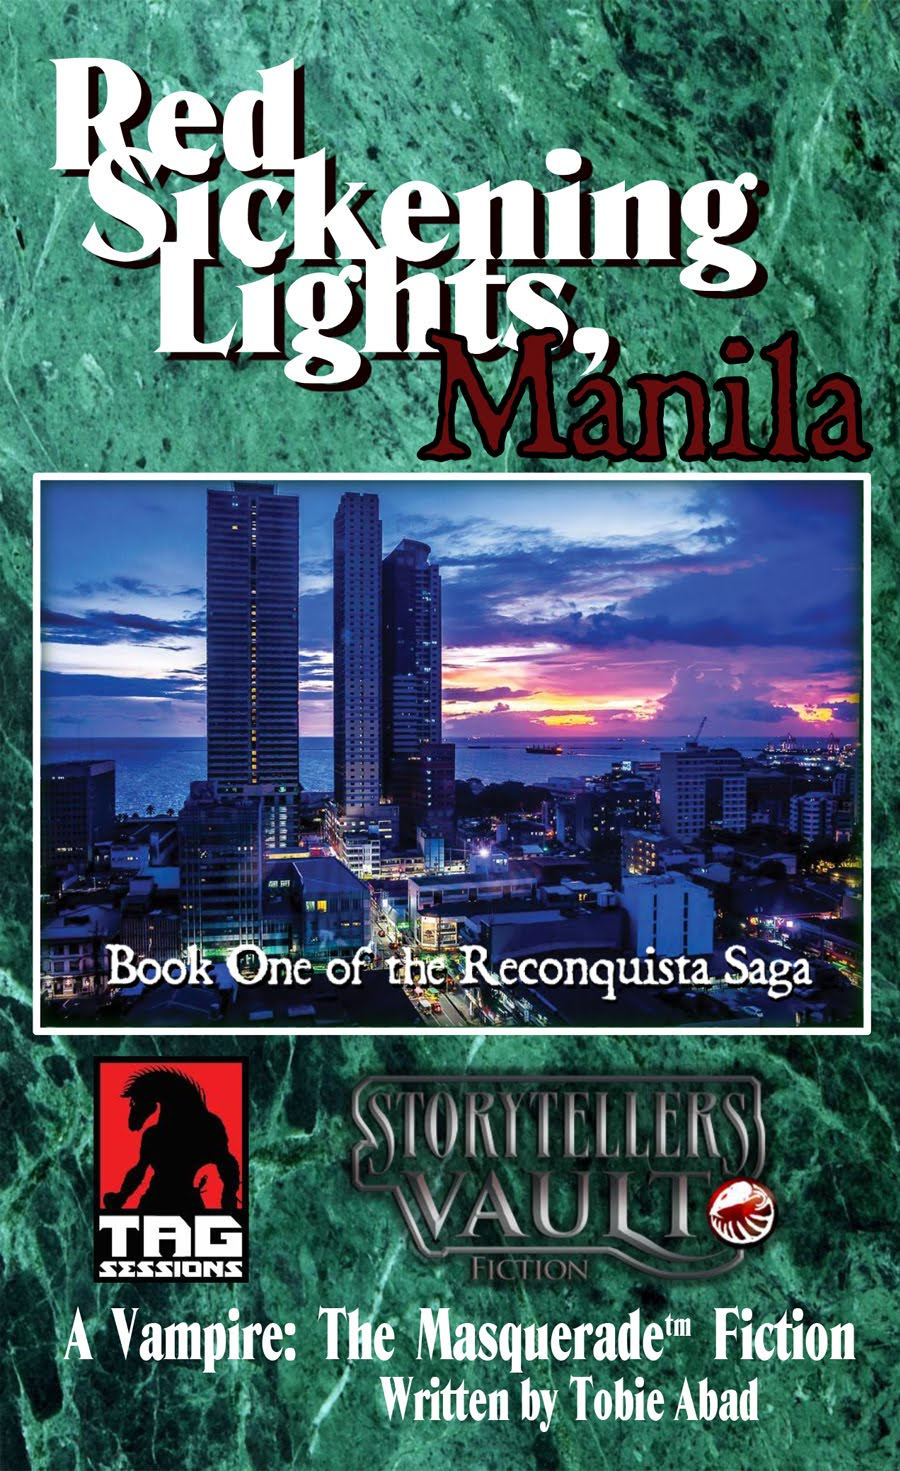 Red, Sickening Lights Manila